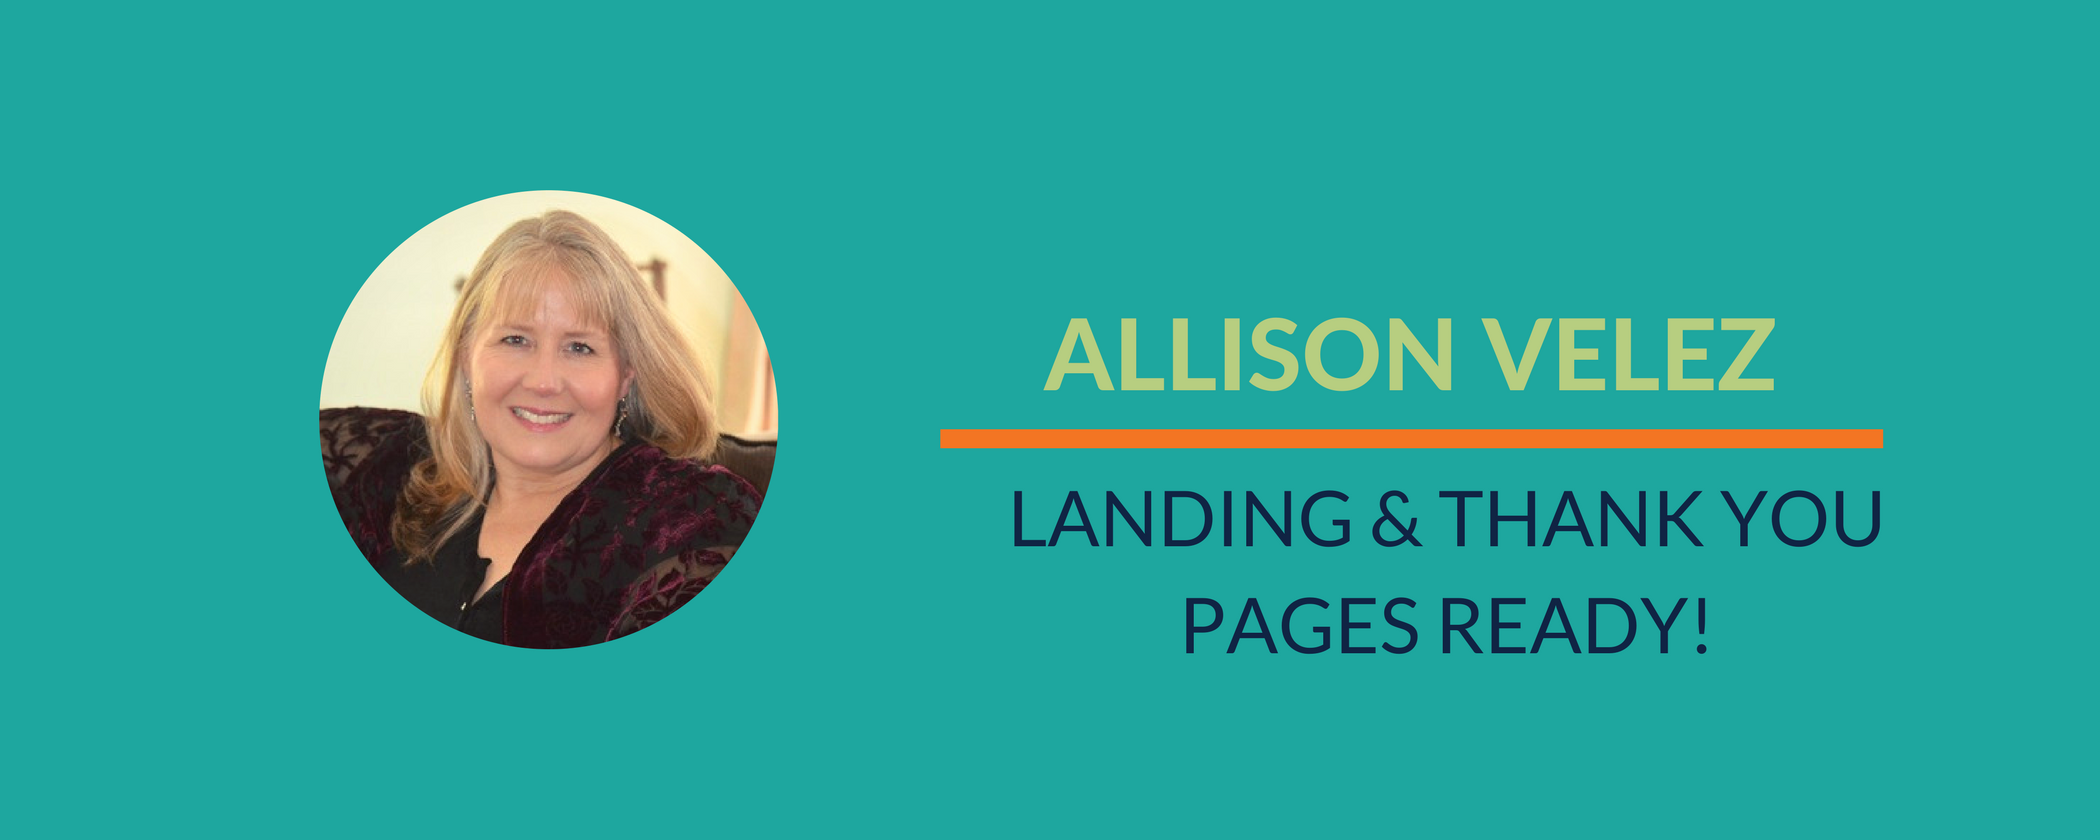 Success Story: Allison finishes her landing & thank you page